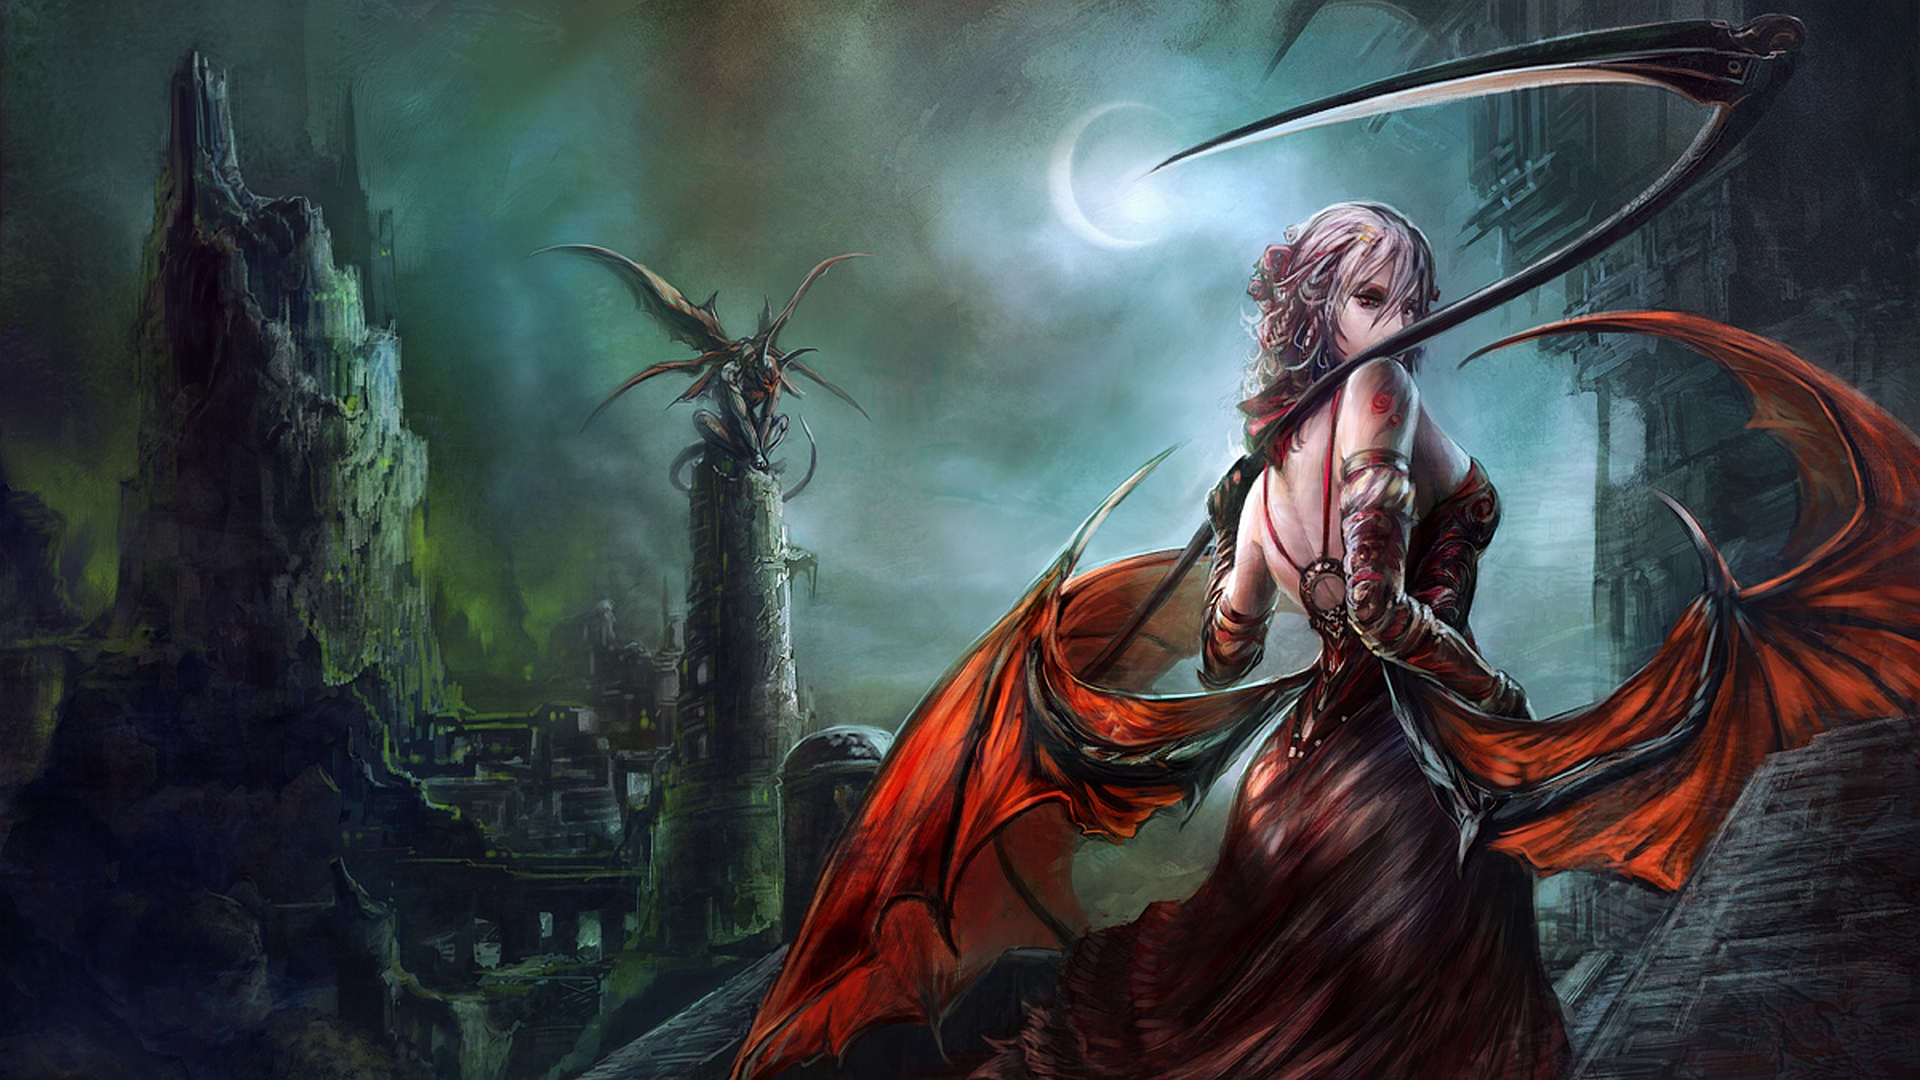 Demon Queen Full HD Wallpaper And Background Image